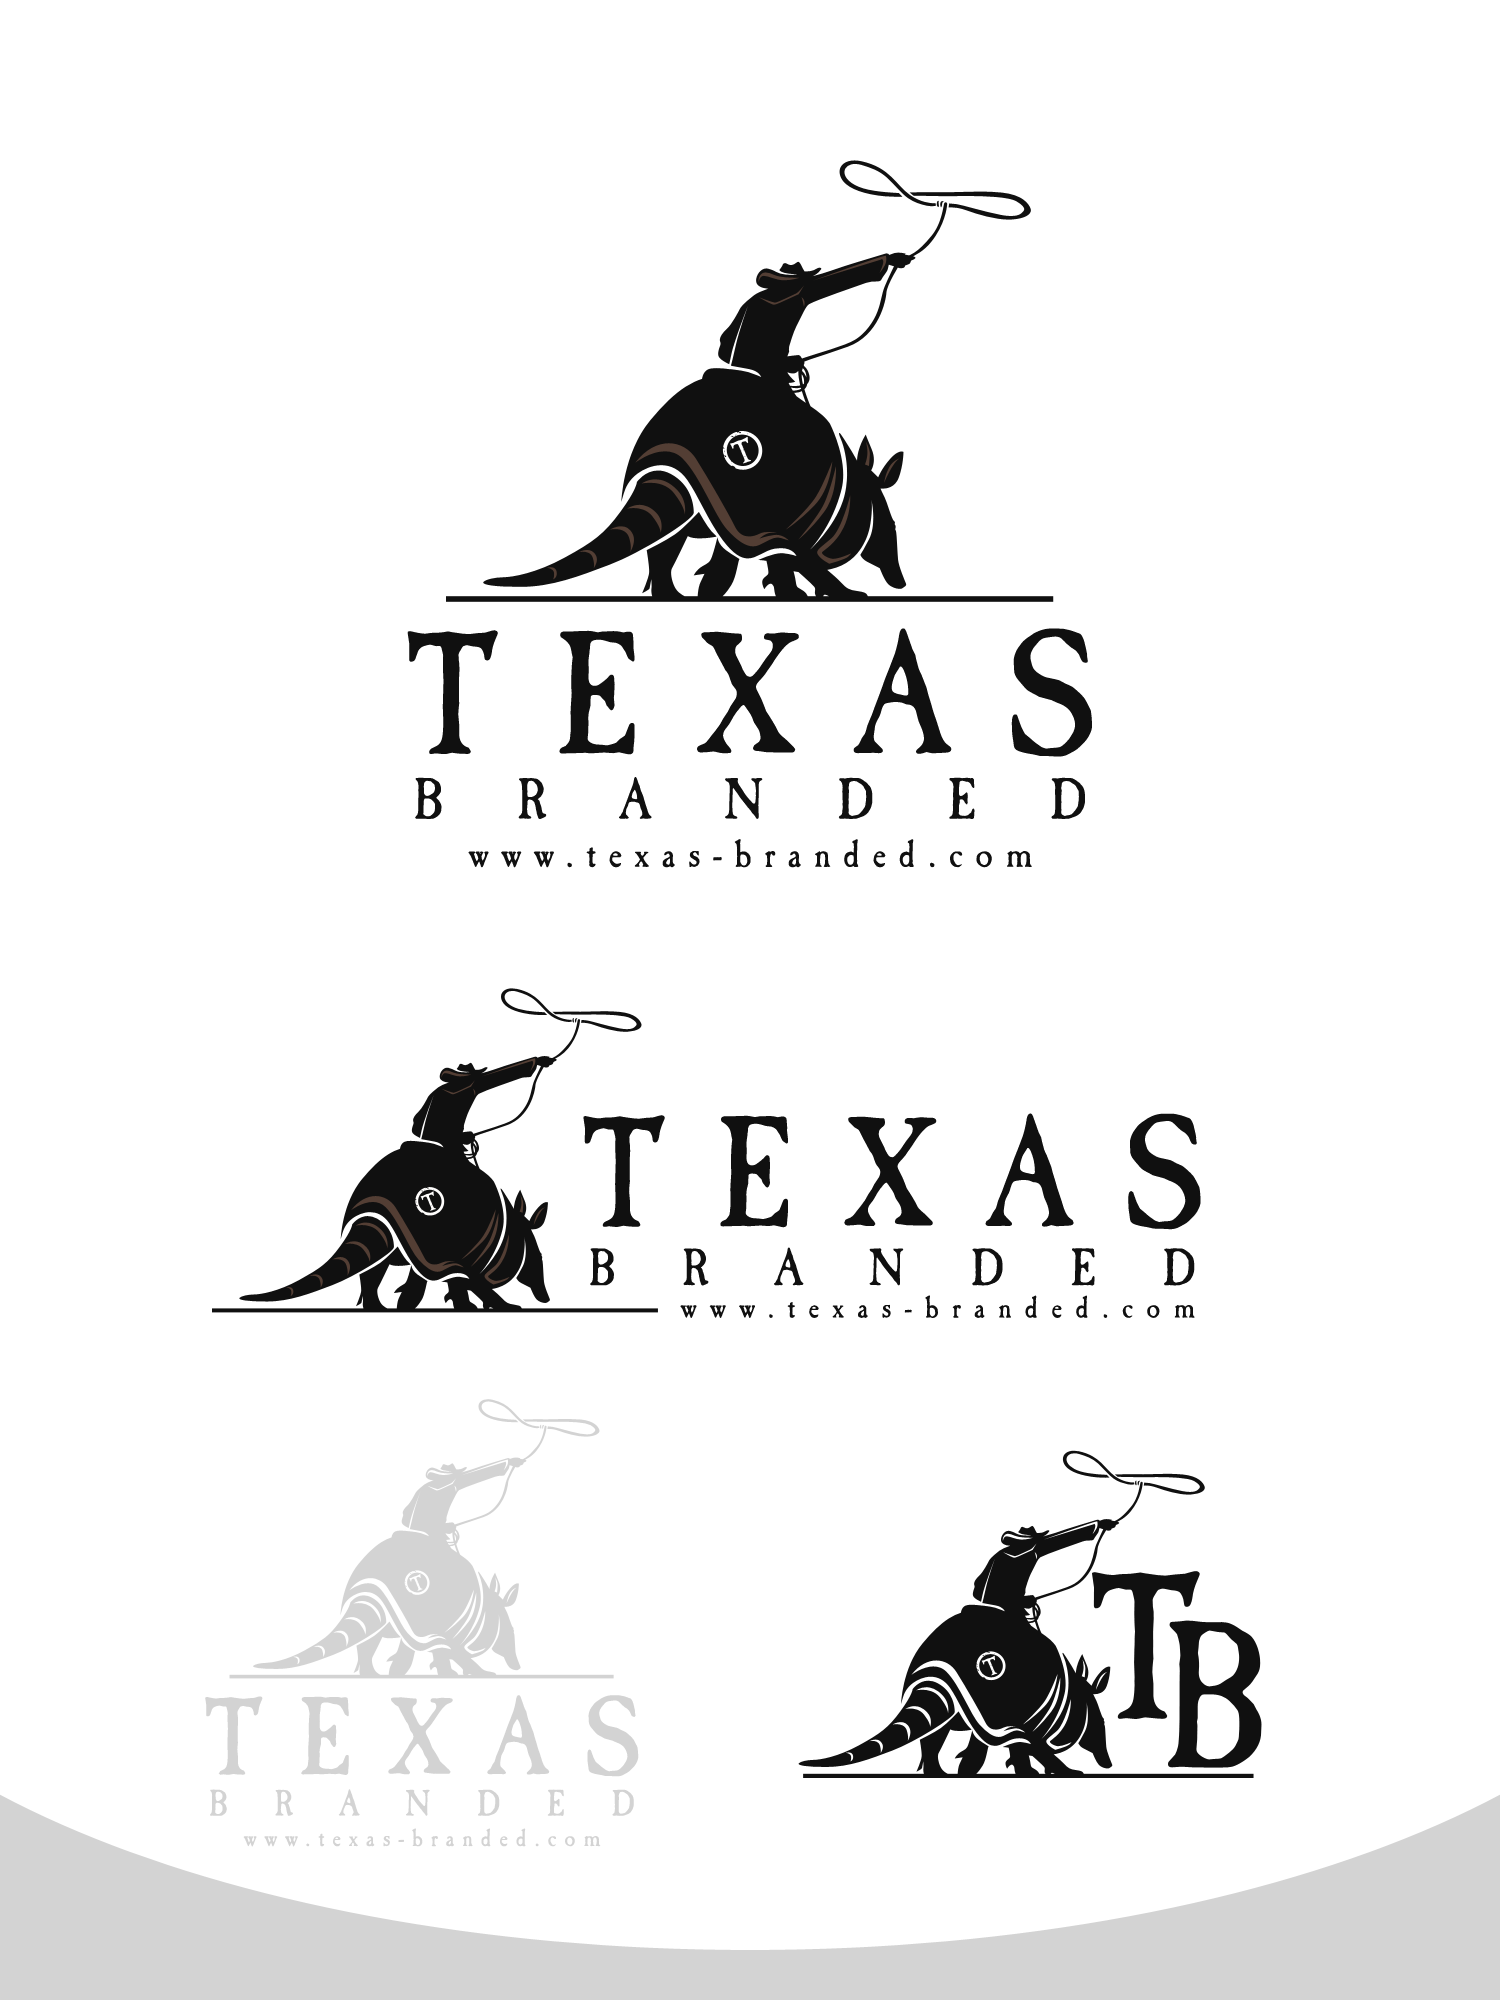 Create an iconic logo for a Texas themed retail company.